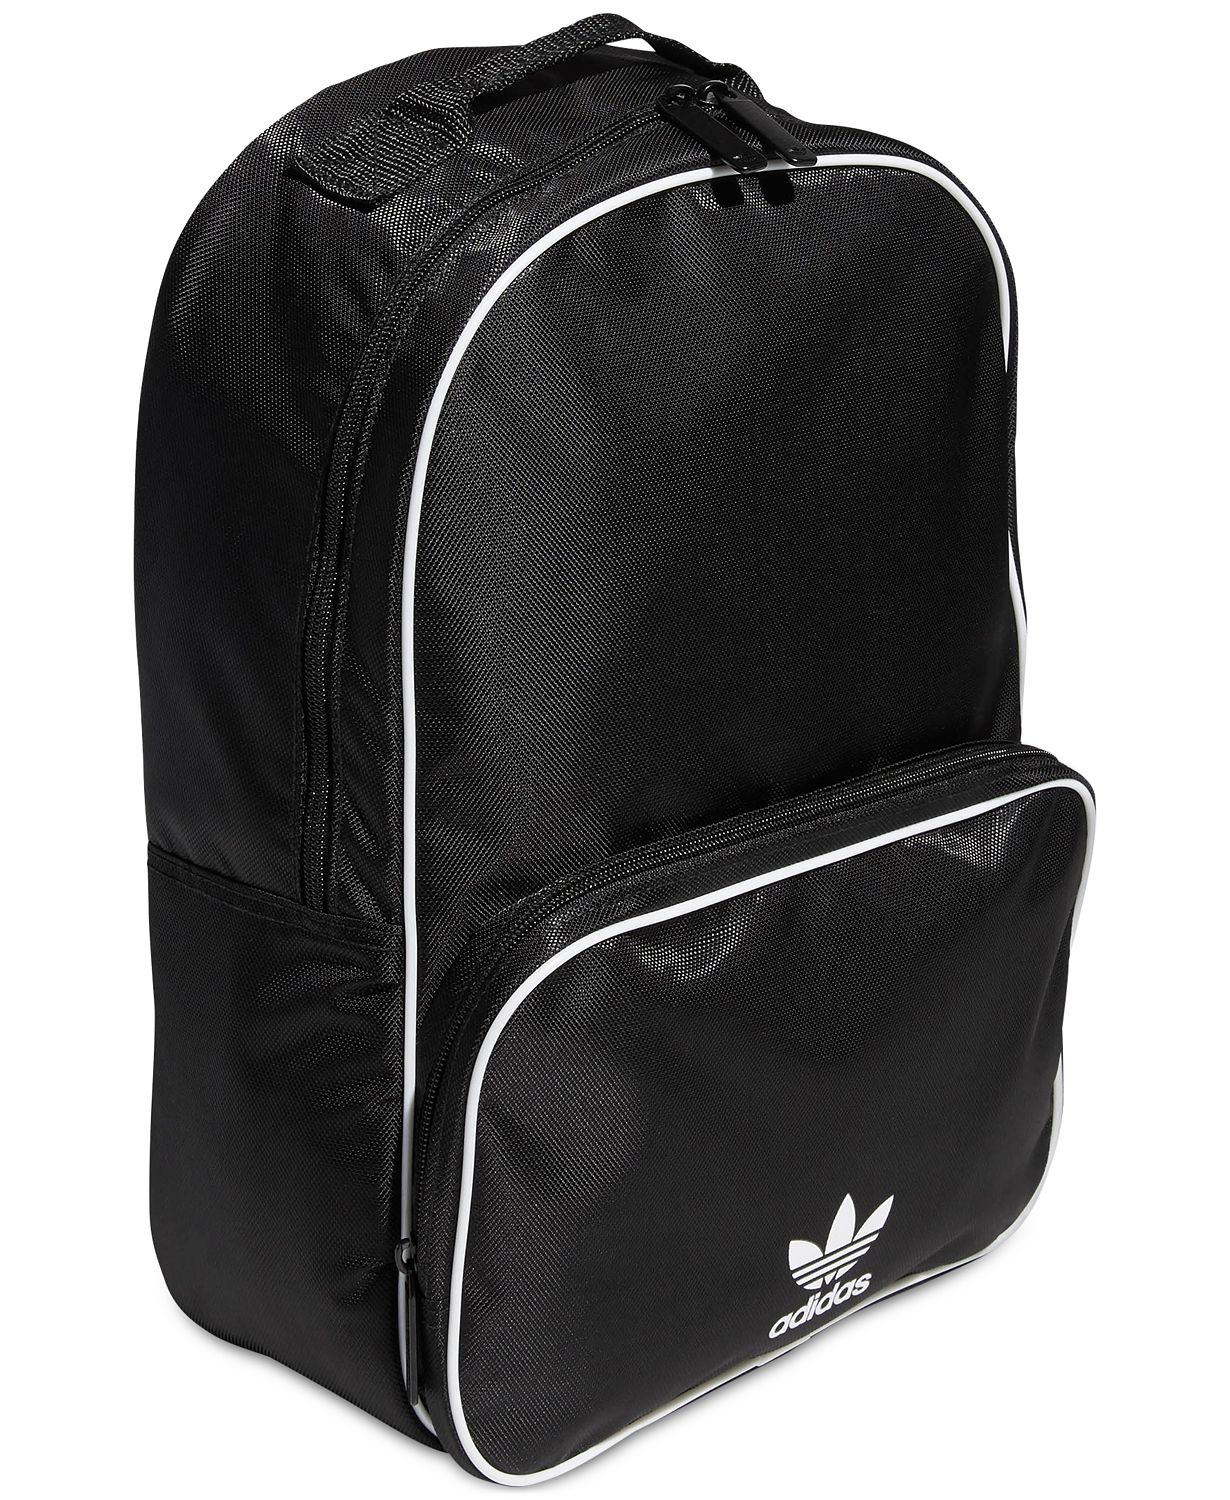 d9a764ded4e0 Adidas Backpack - BigGo Price Search Engine